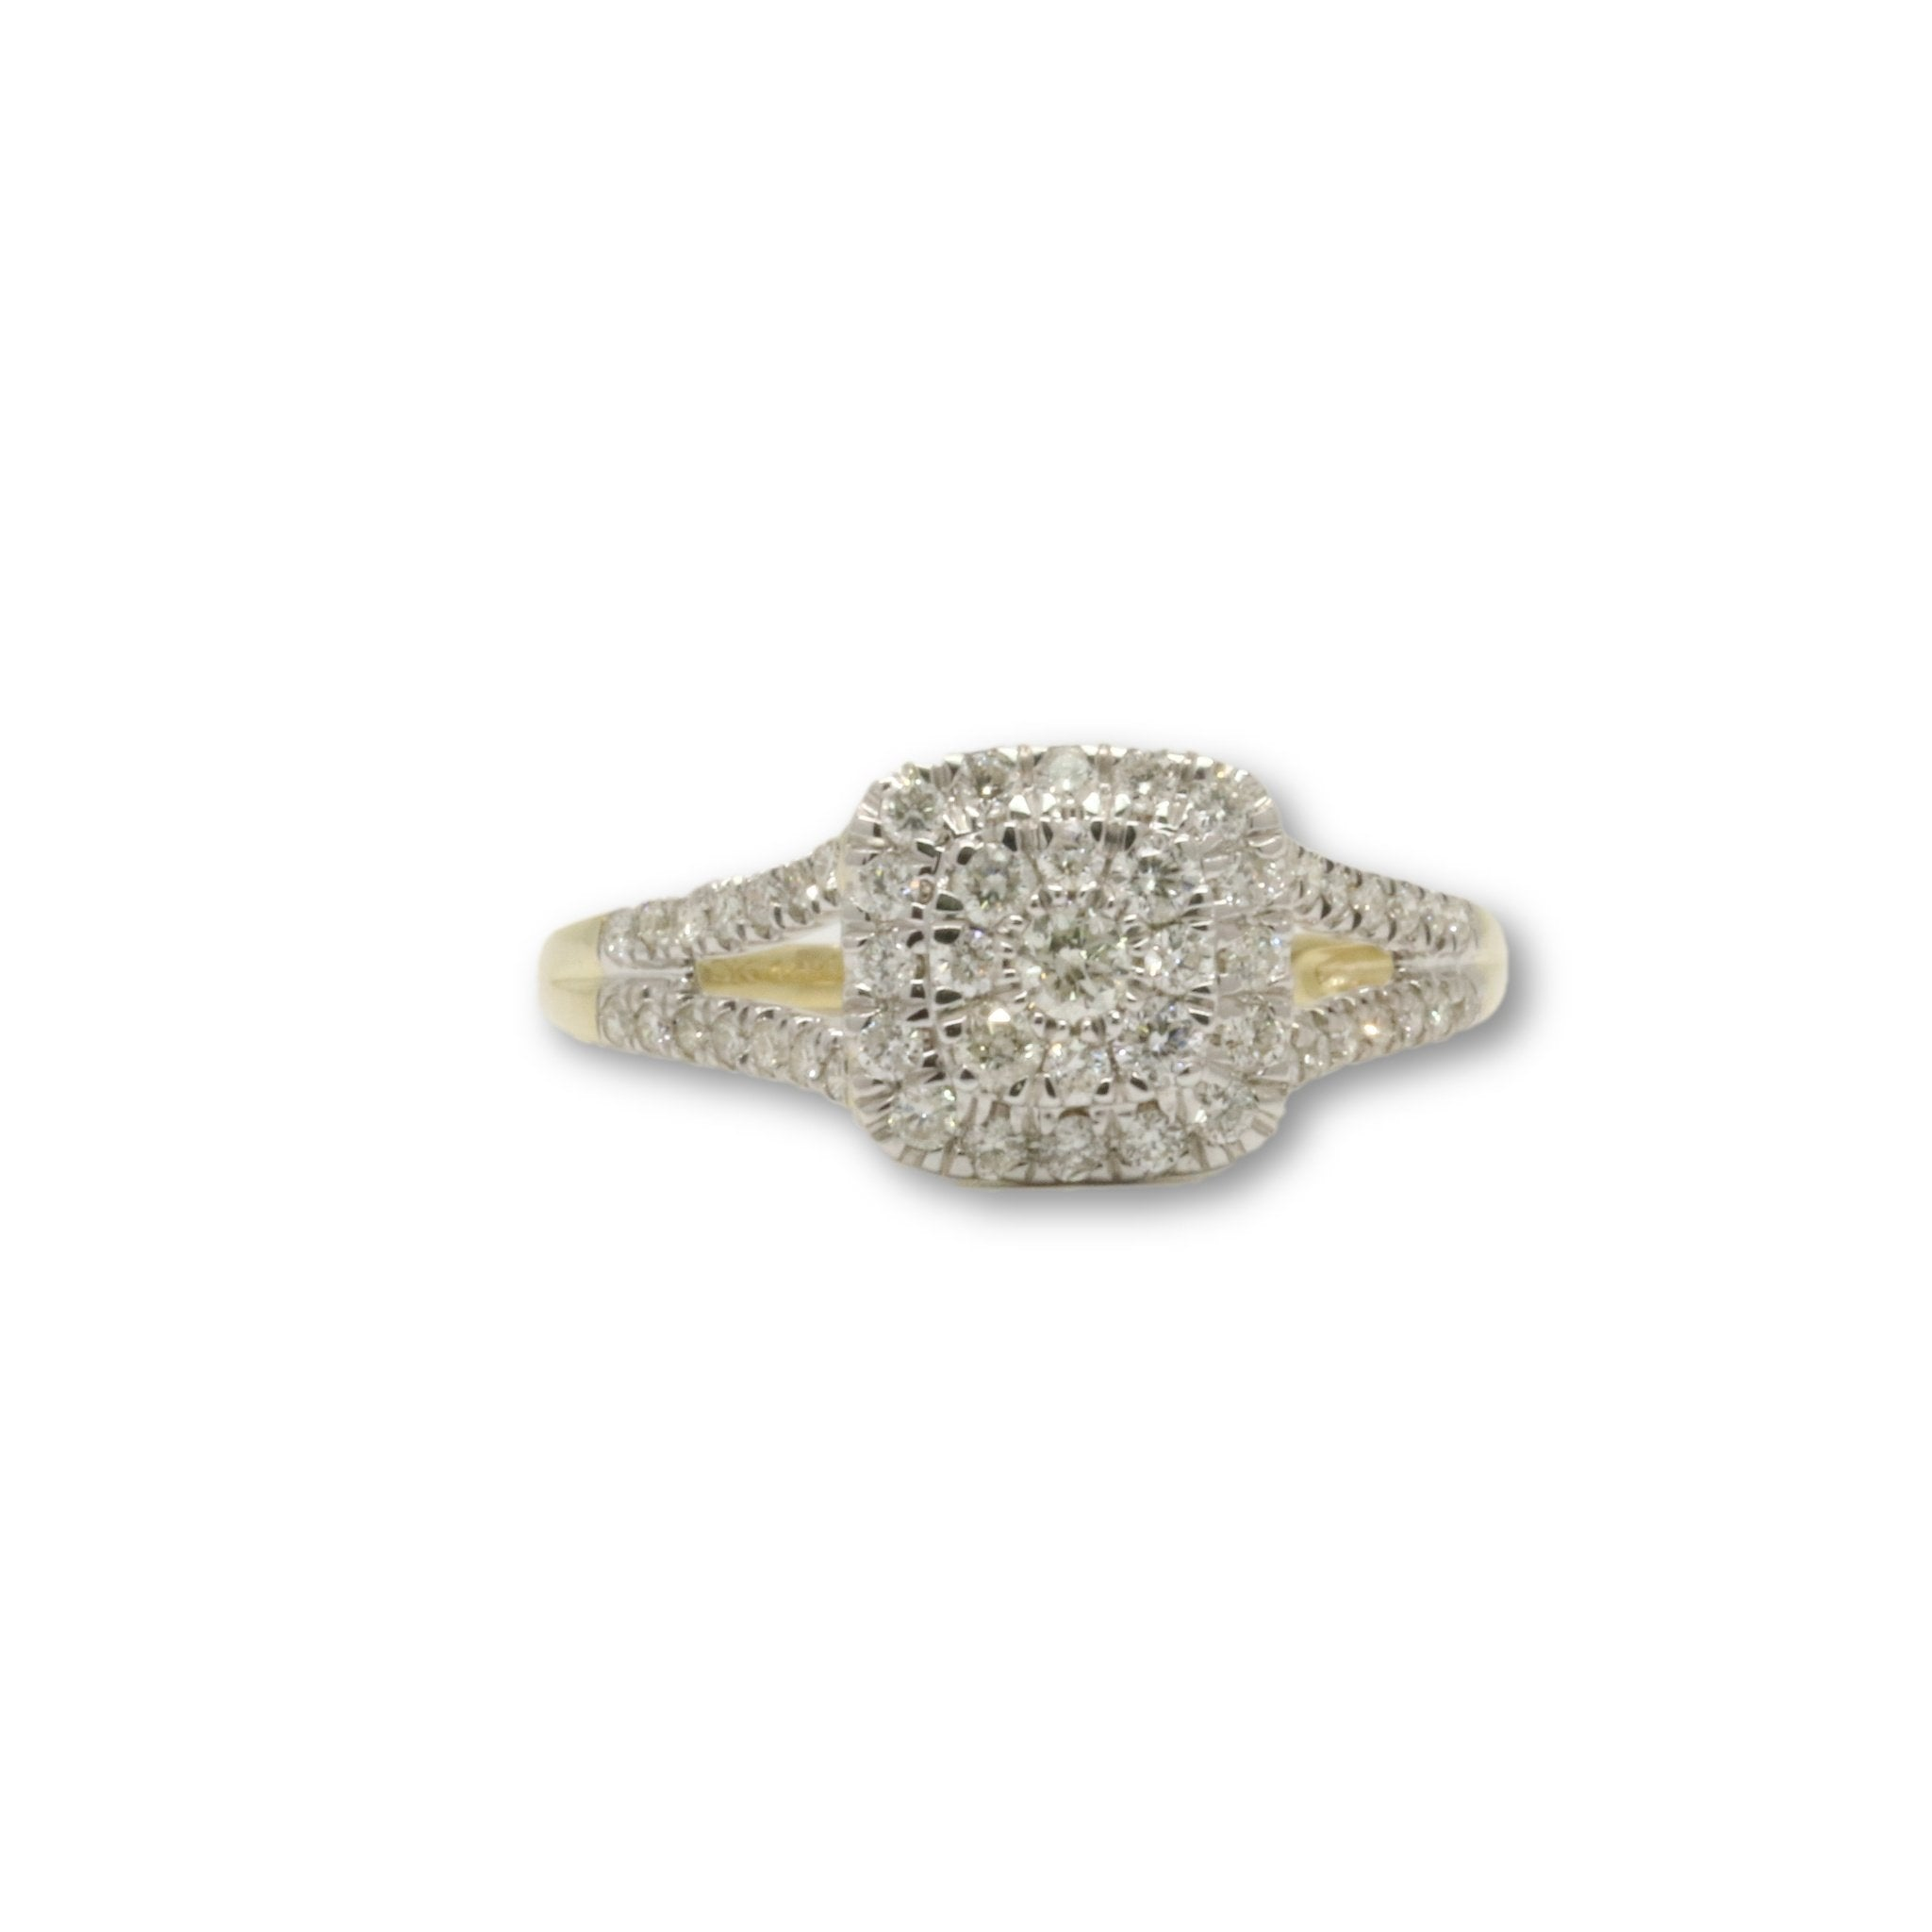 Bague Halo 0.50ct Diamants en or jaune 10k pour femme - orquebec